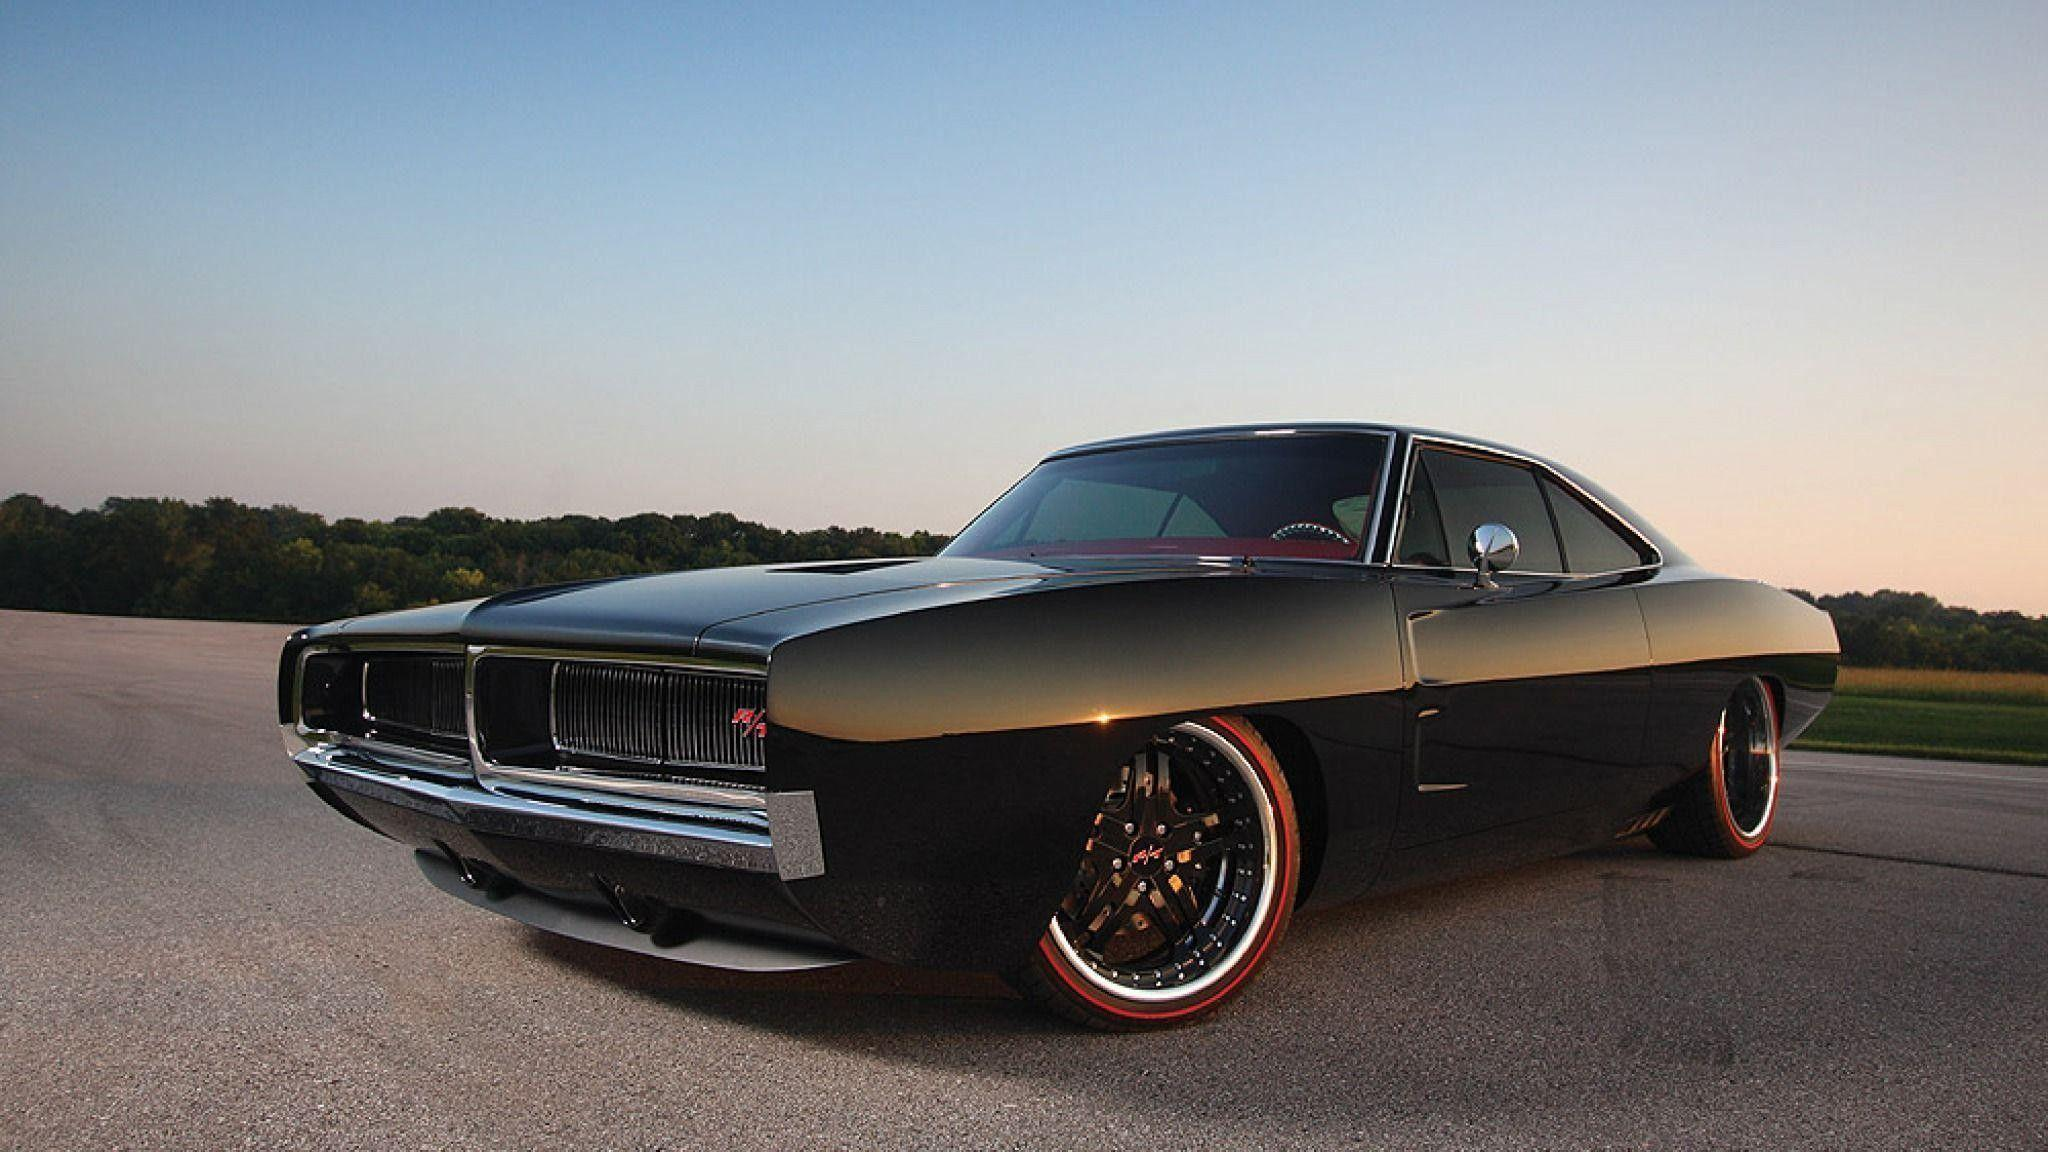 1970 Dodge Charger Rt Wallpapers